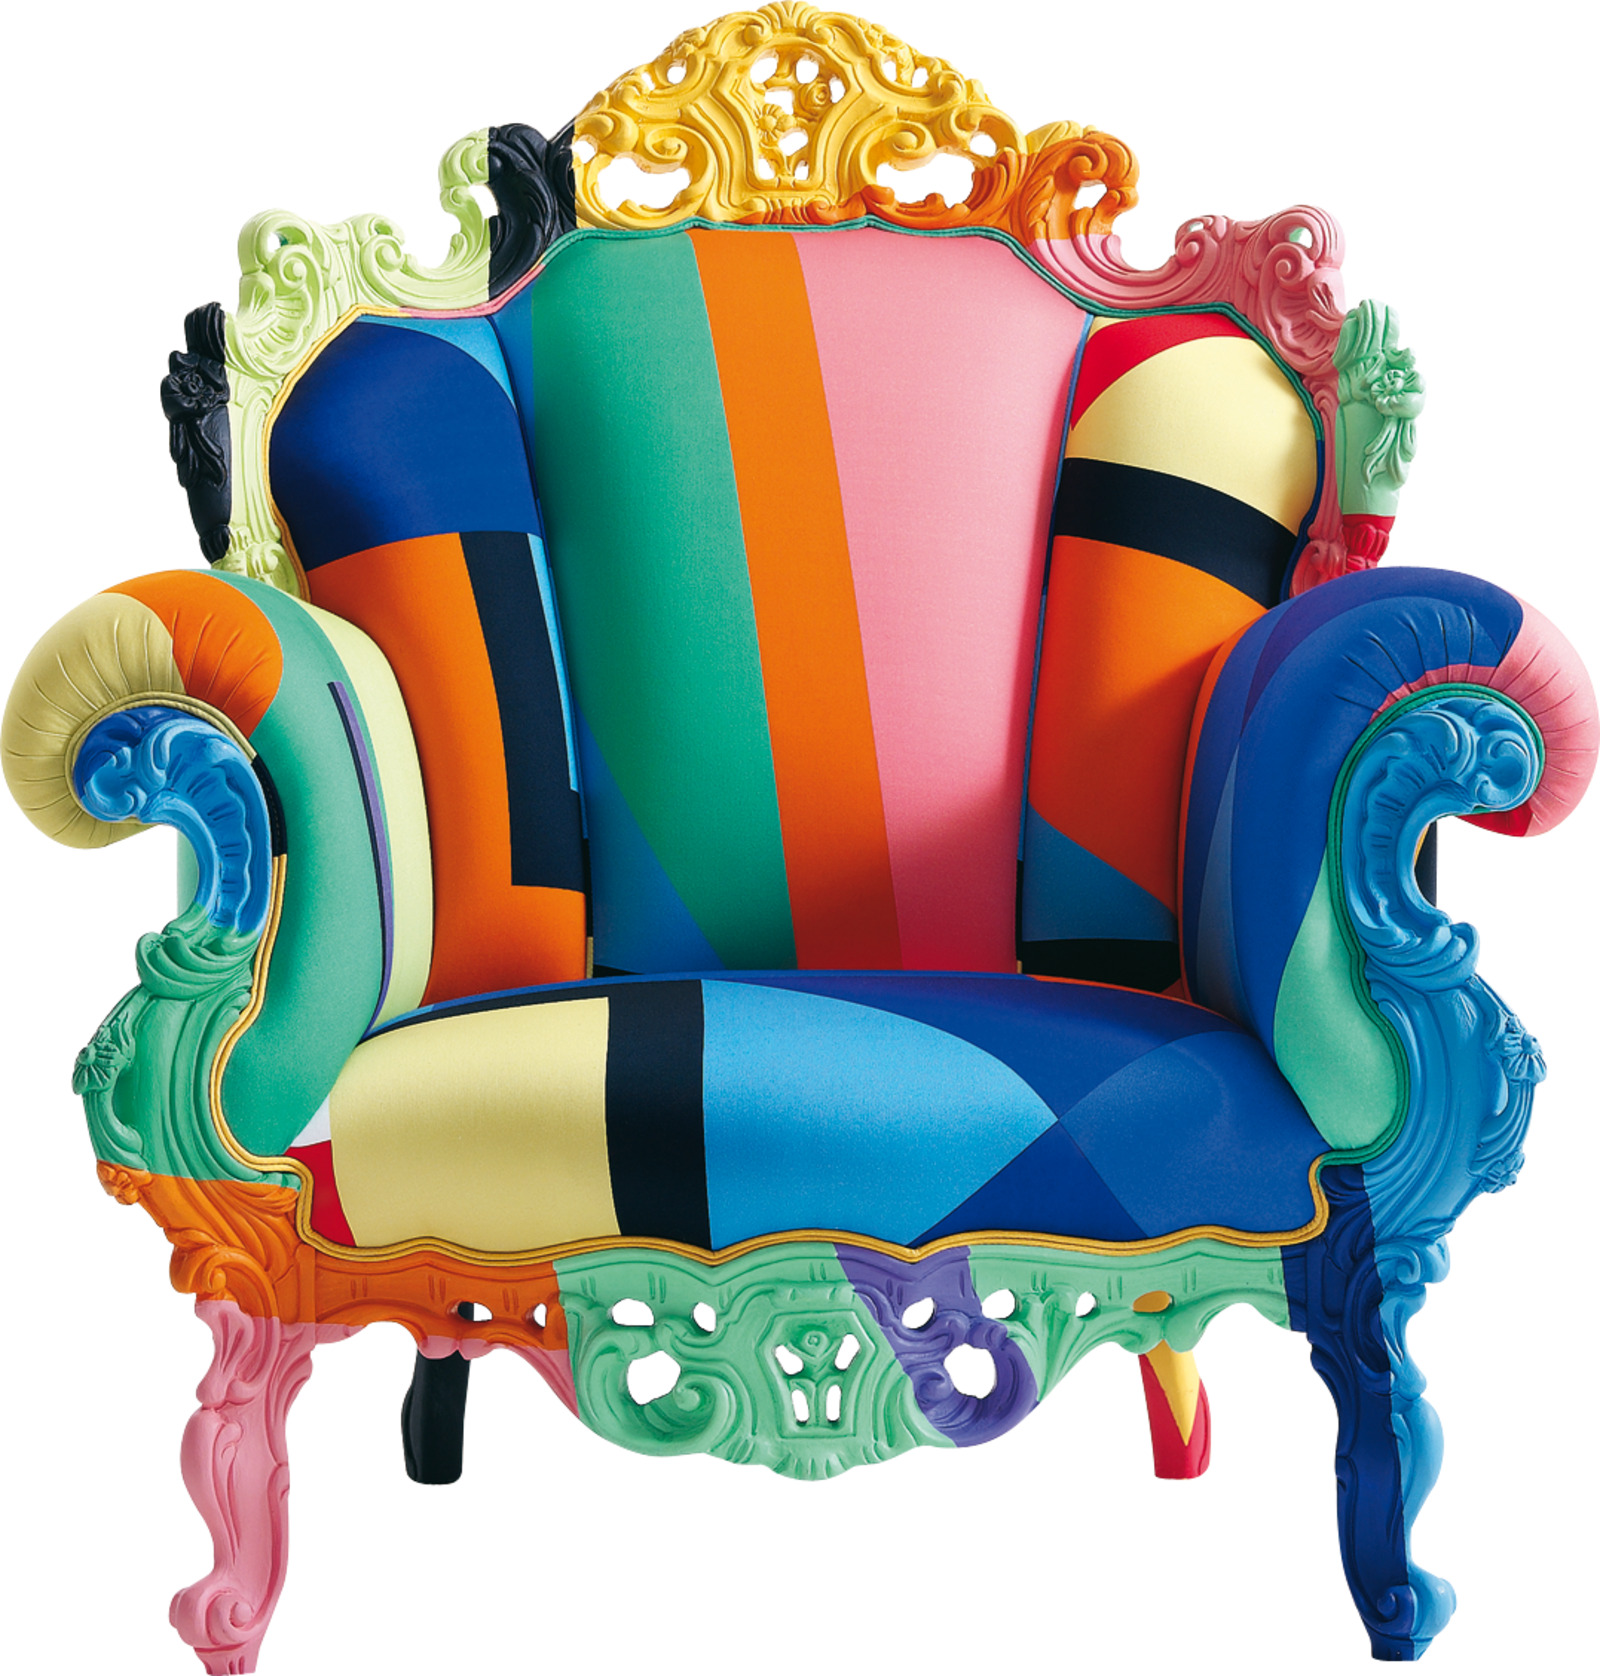 Clan milano design week 2015. Masters Of Architecture Alessandro Mendini And His Art Design Inspirations Essential Home